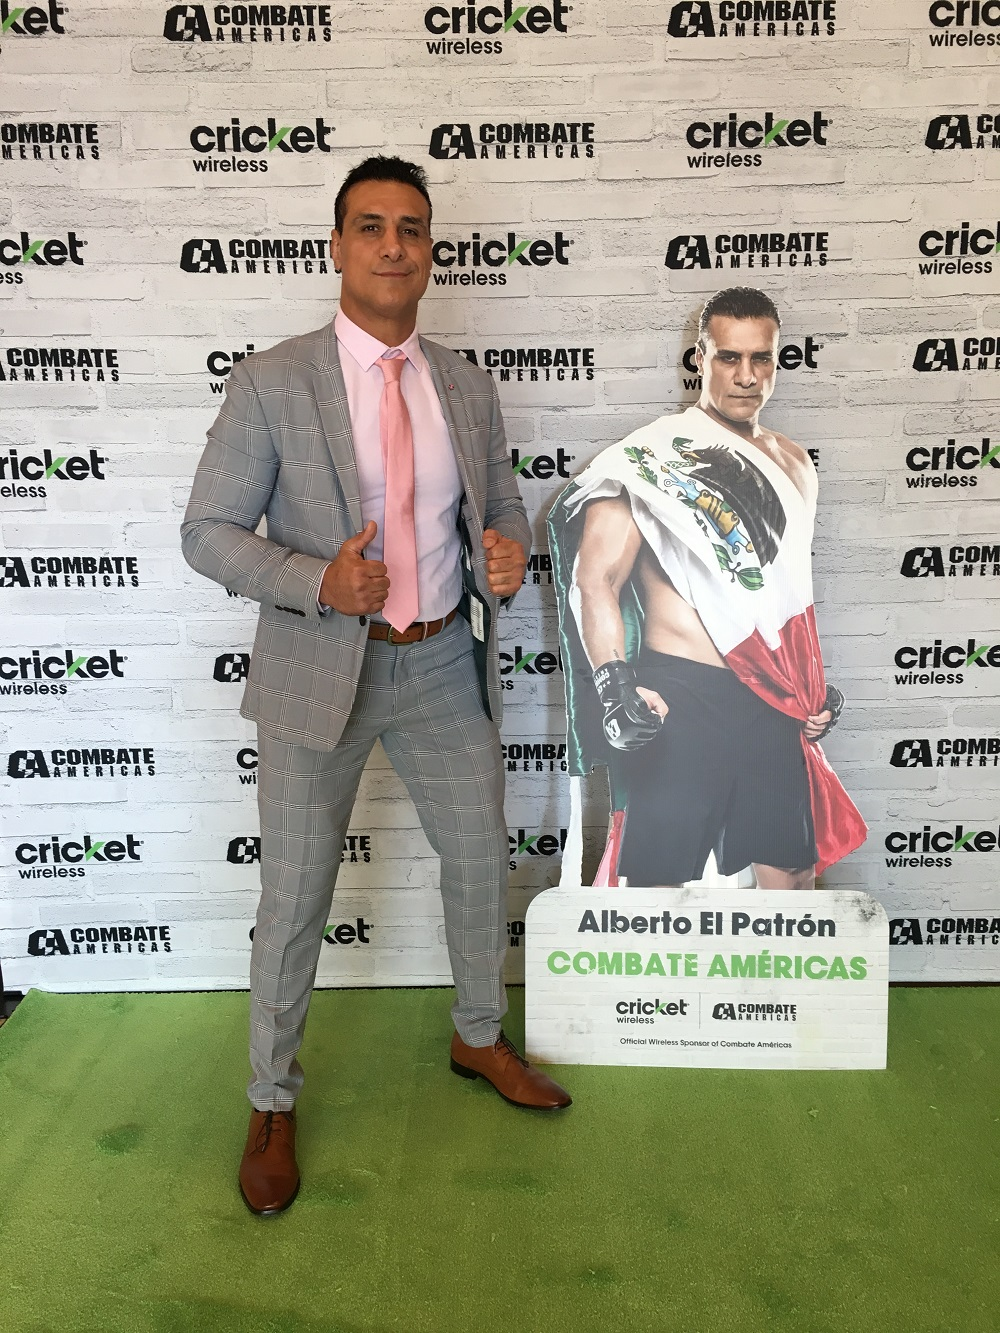 Cricket Wireless and Combate Americas bring new fan experiences to cities across the country